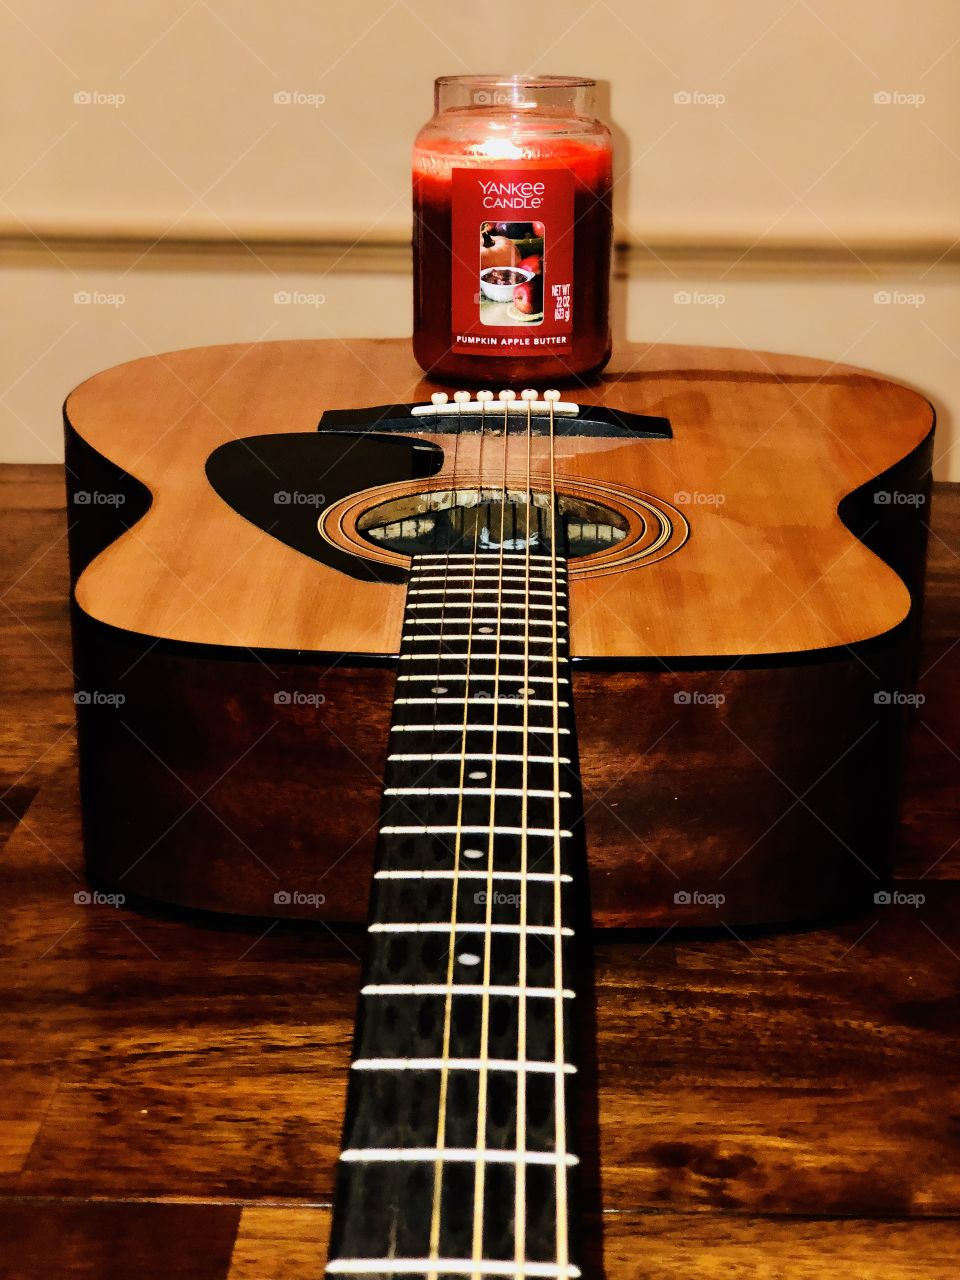 Acoustic Yankee candle on fall nights